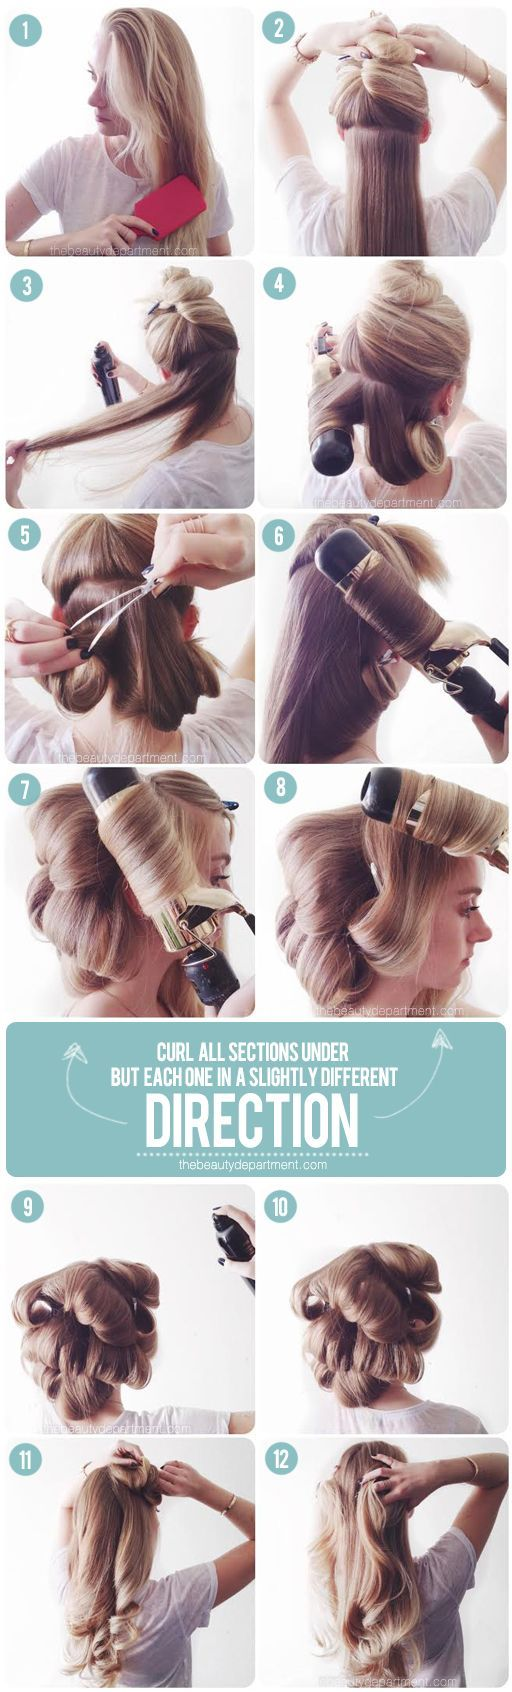 tutorial for faking a pro blowout and getting big, soft, classic waves.